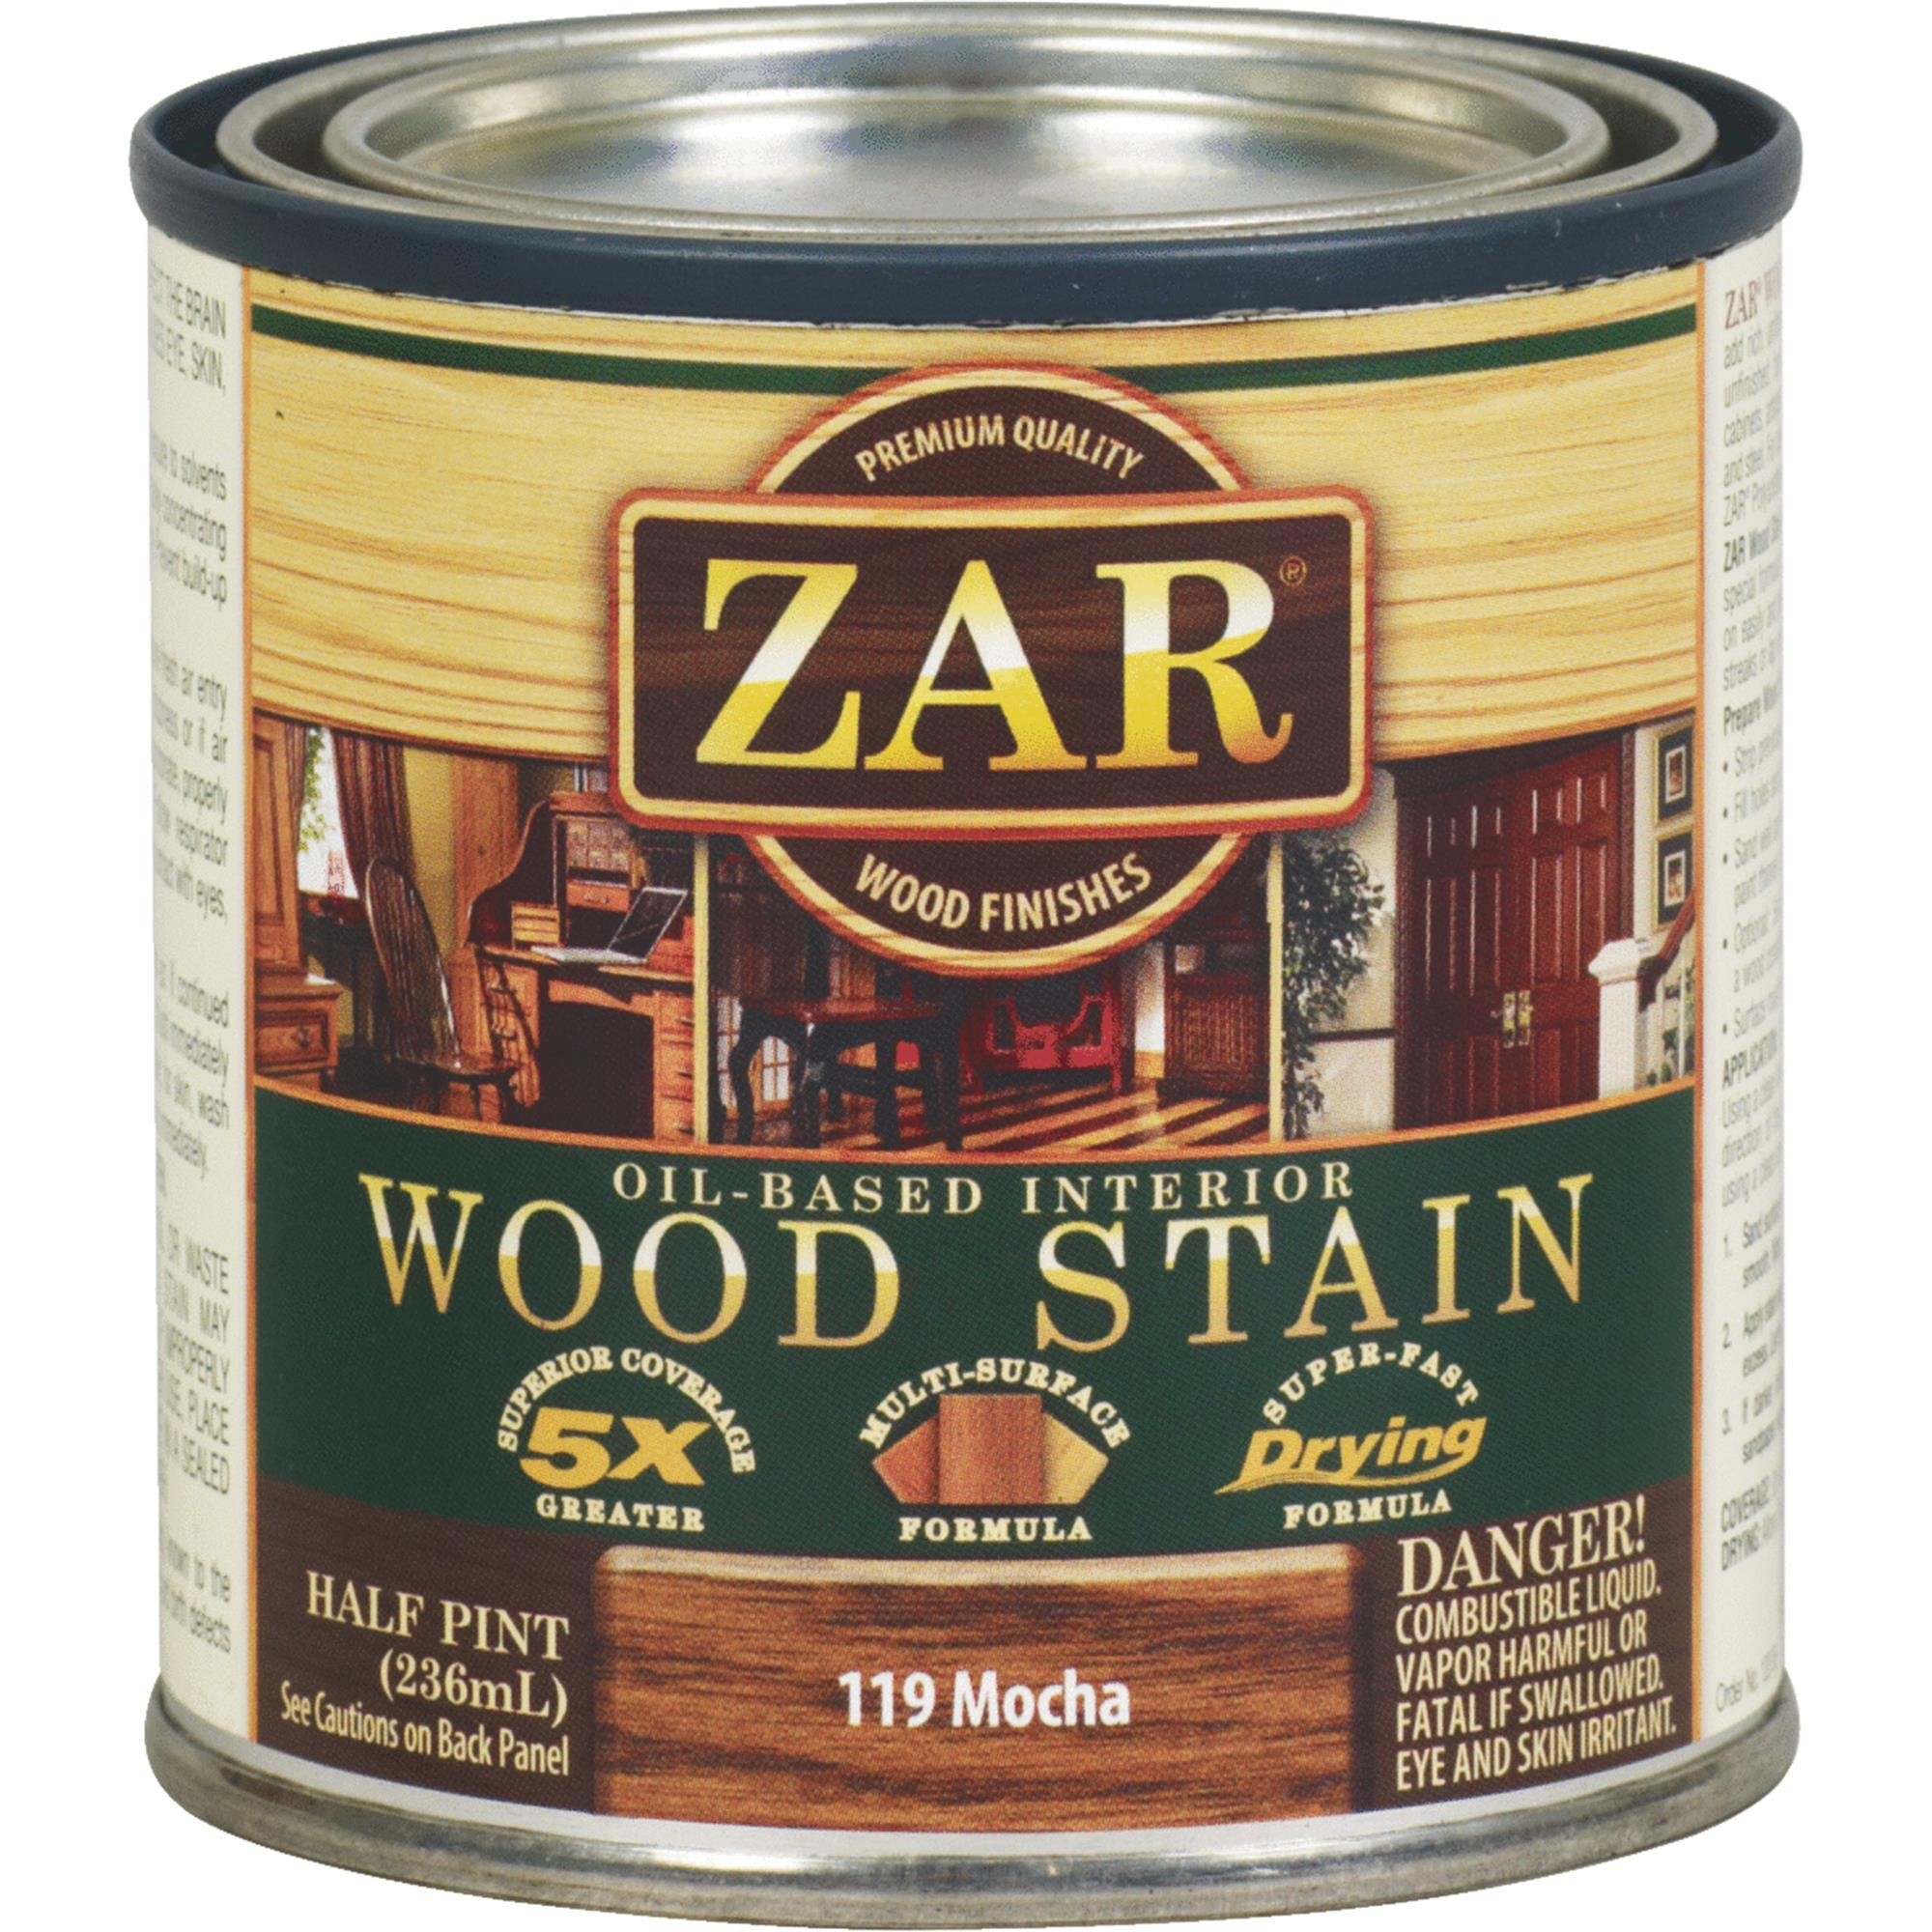 ZAR Oil-Based Wood Stain